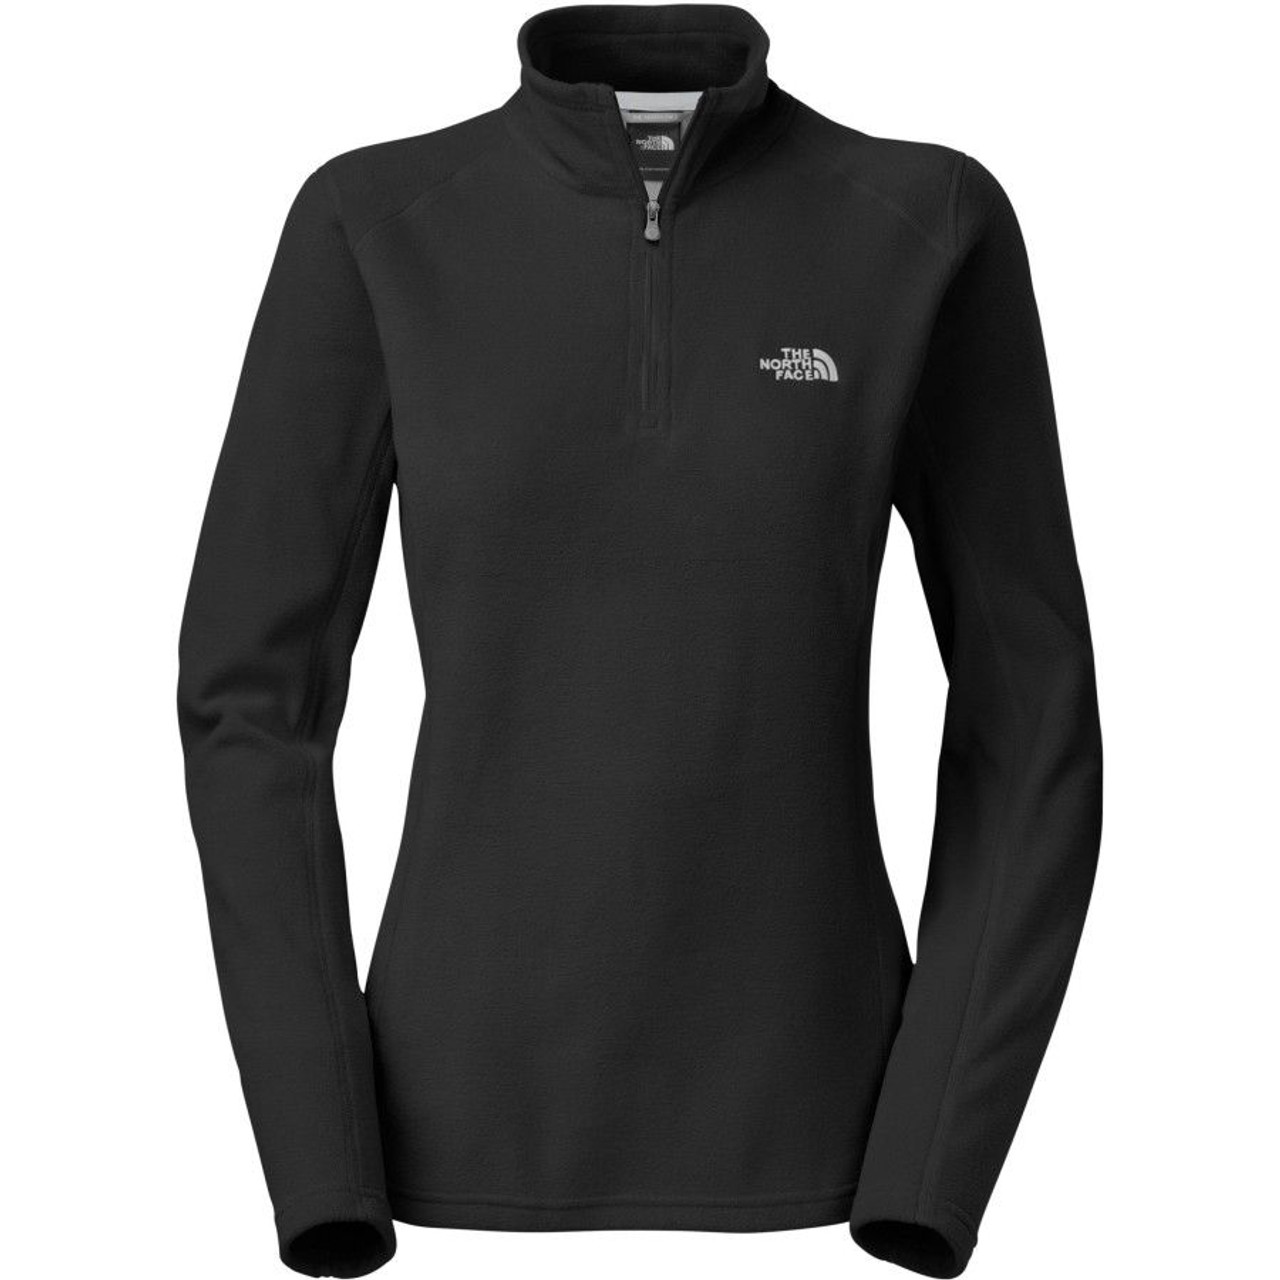 The North Face - Glacier 1/4 Zip Fleece - WMS @http//www.mountainmailorder.co.za